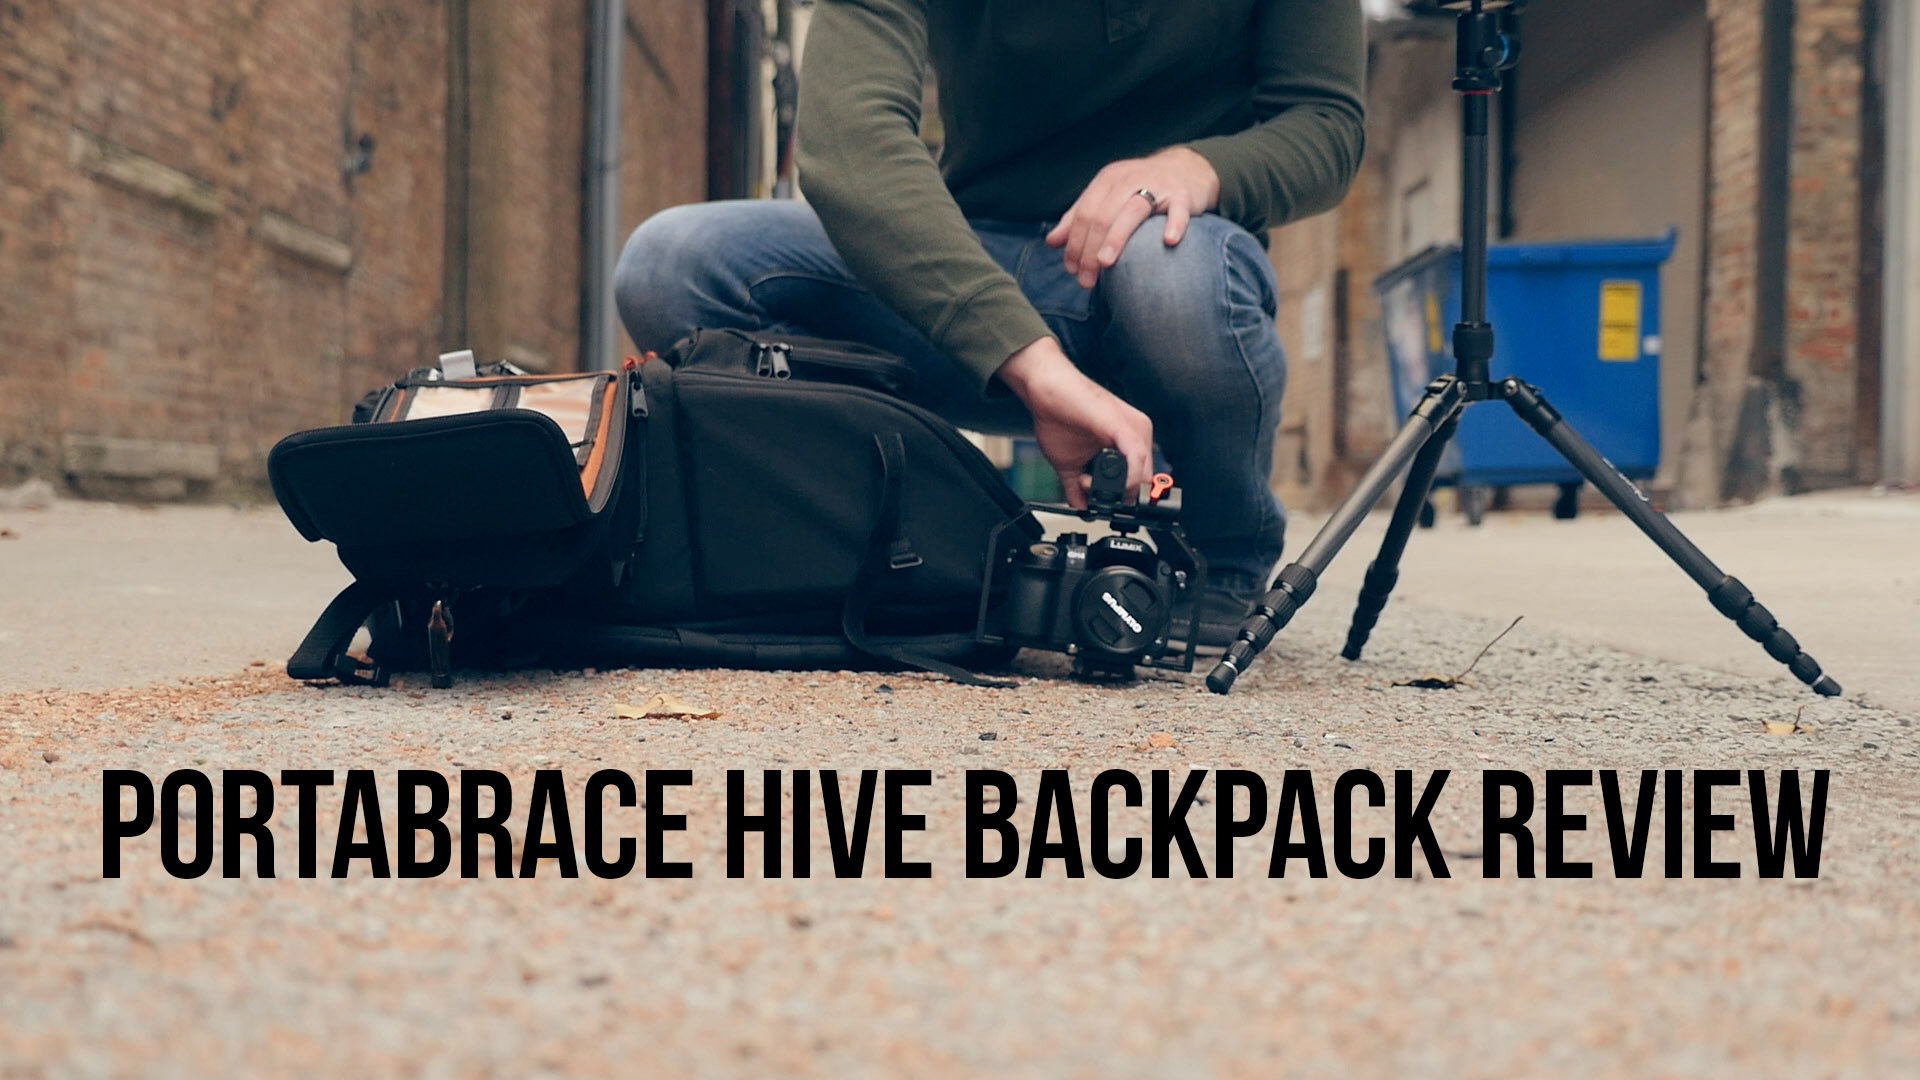 The Perfect Production Backpack: A Review of the Portabrace Camera Hive